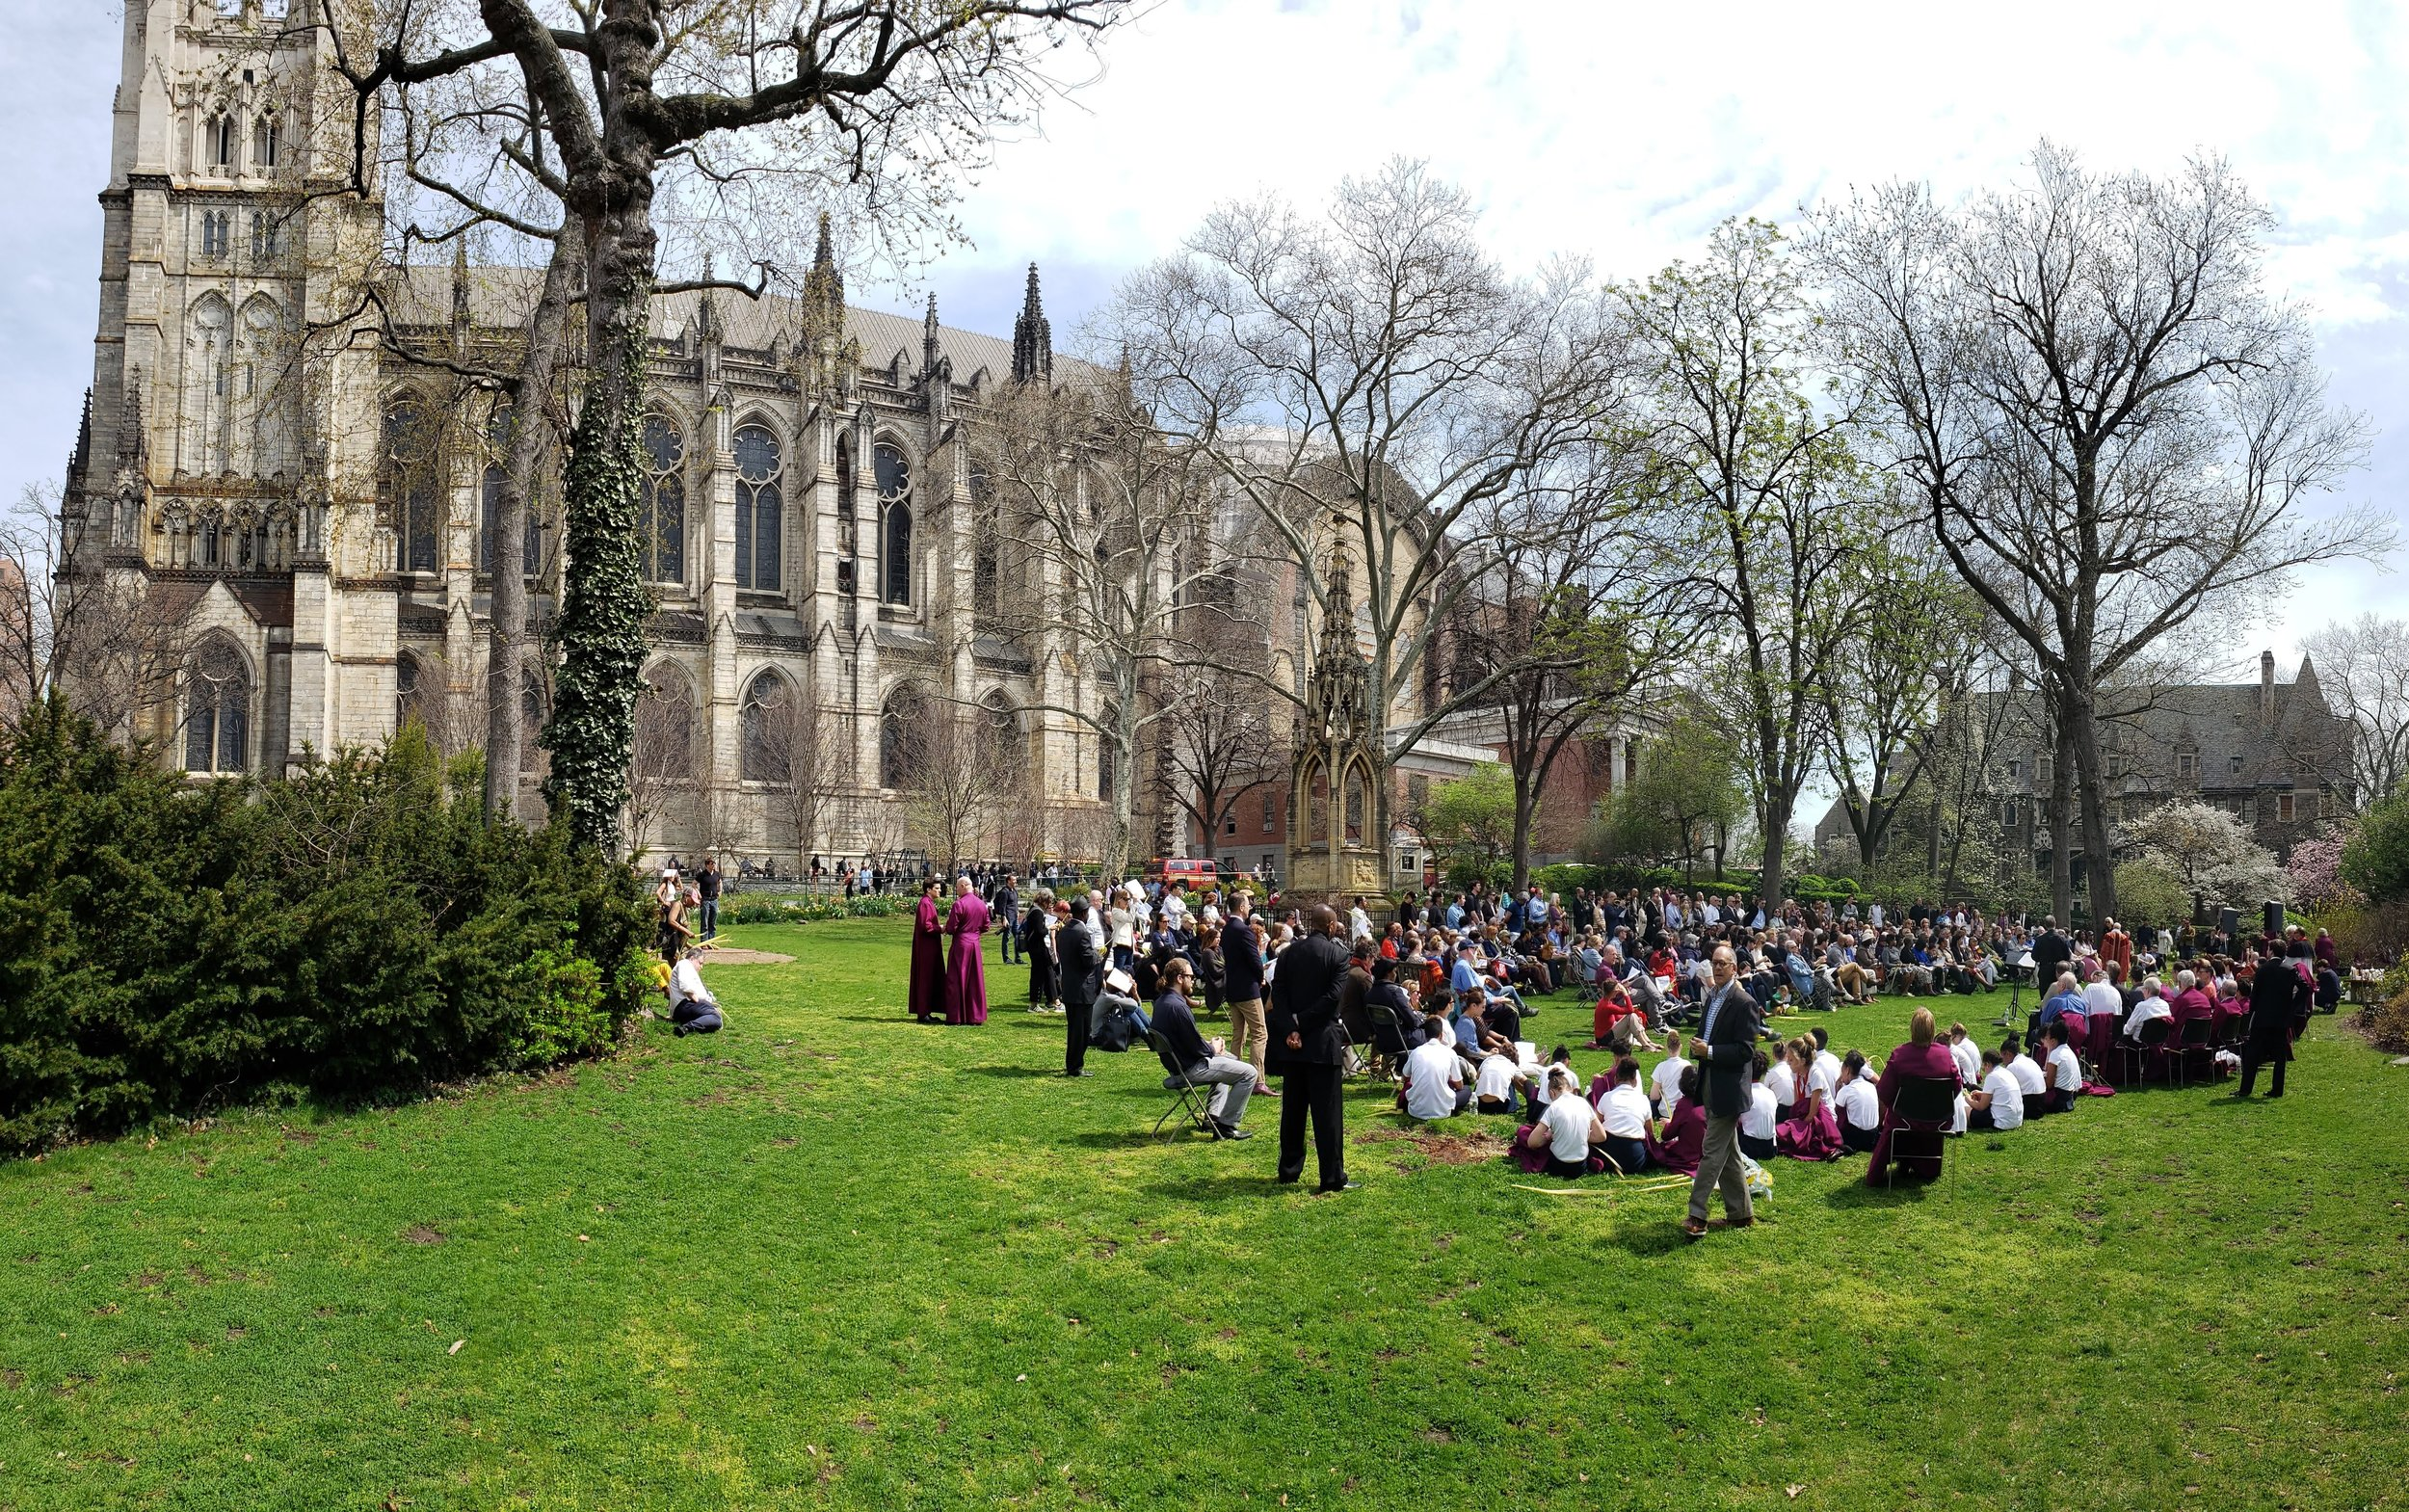 2019, April 14: On Palm Sunday this year, a small fire broke out in the basement less than an hour before the service began. As emergency workers controlled it, the clergy and congregation decamped to the adjacent yard and held mass. For an hour, St. John the Divine was an institution without a cathedral. Credit: Photo by the author